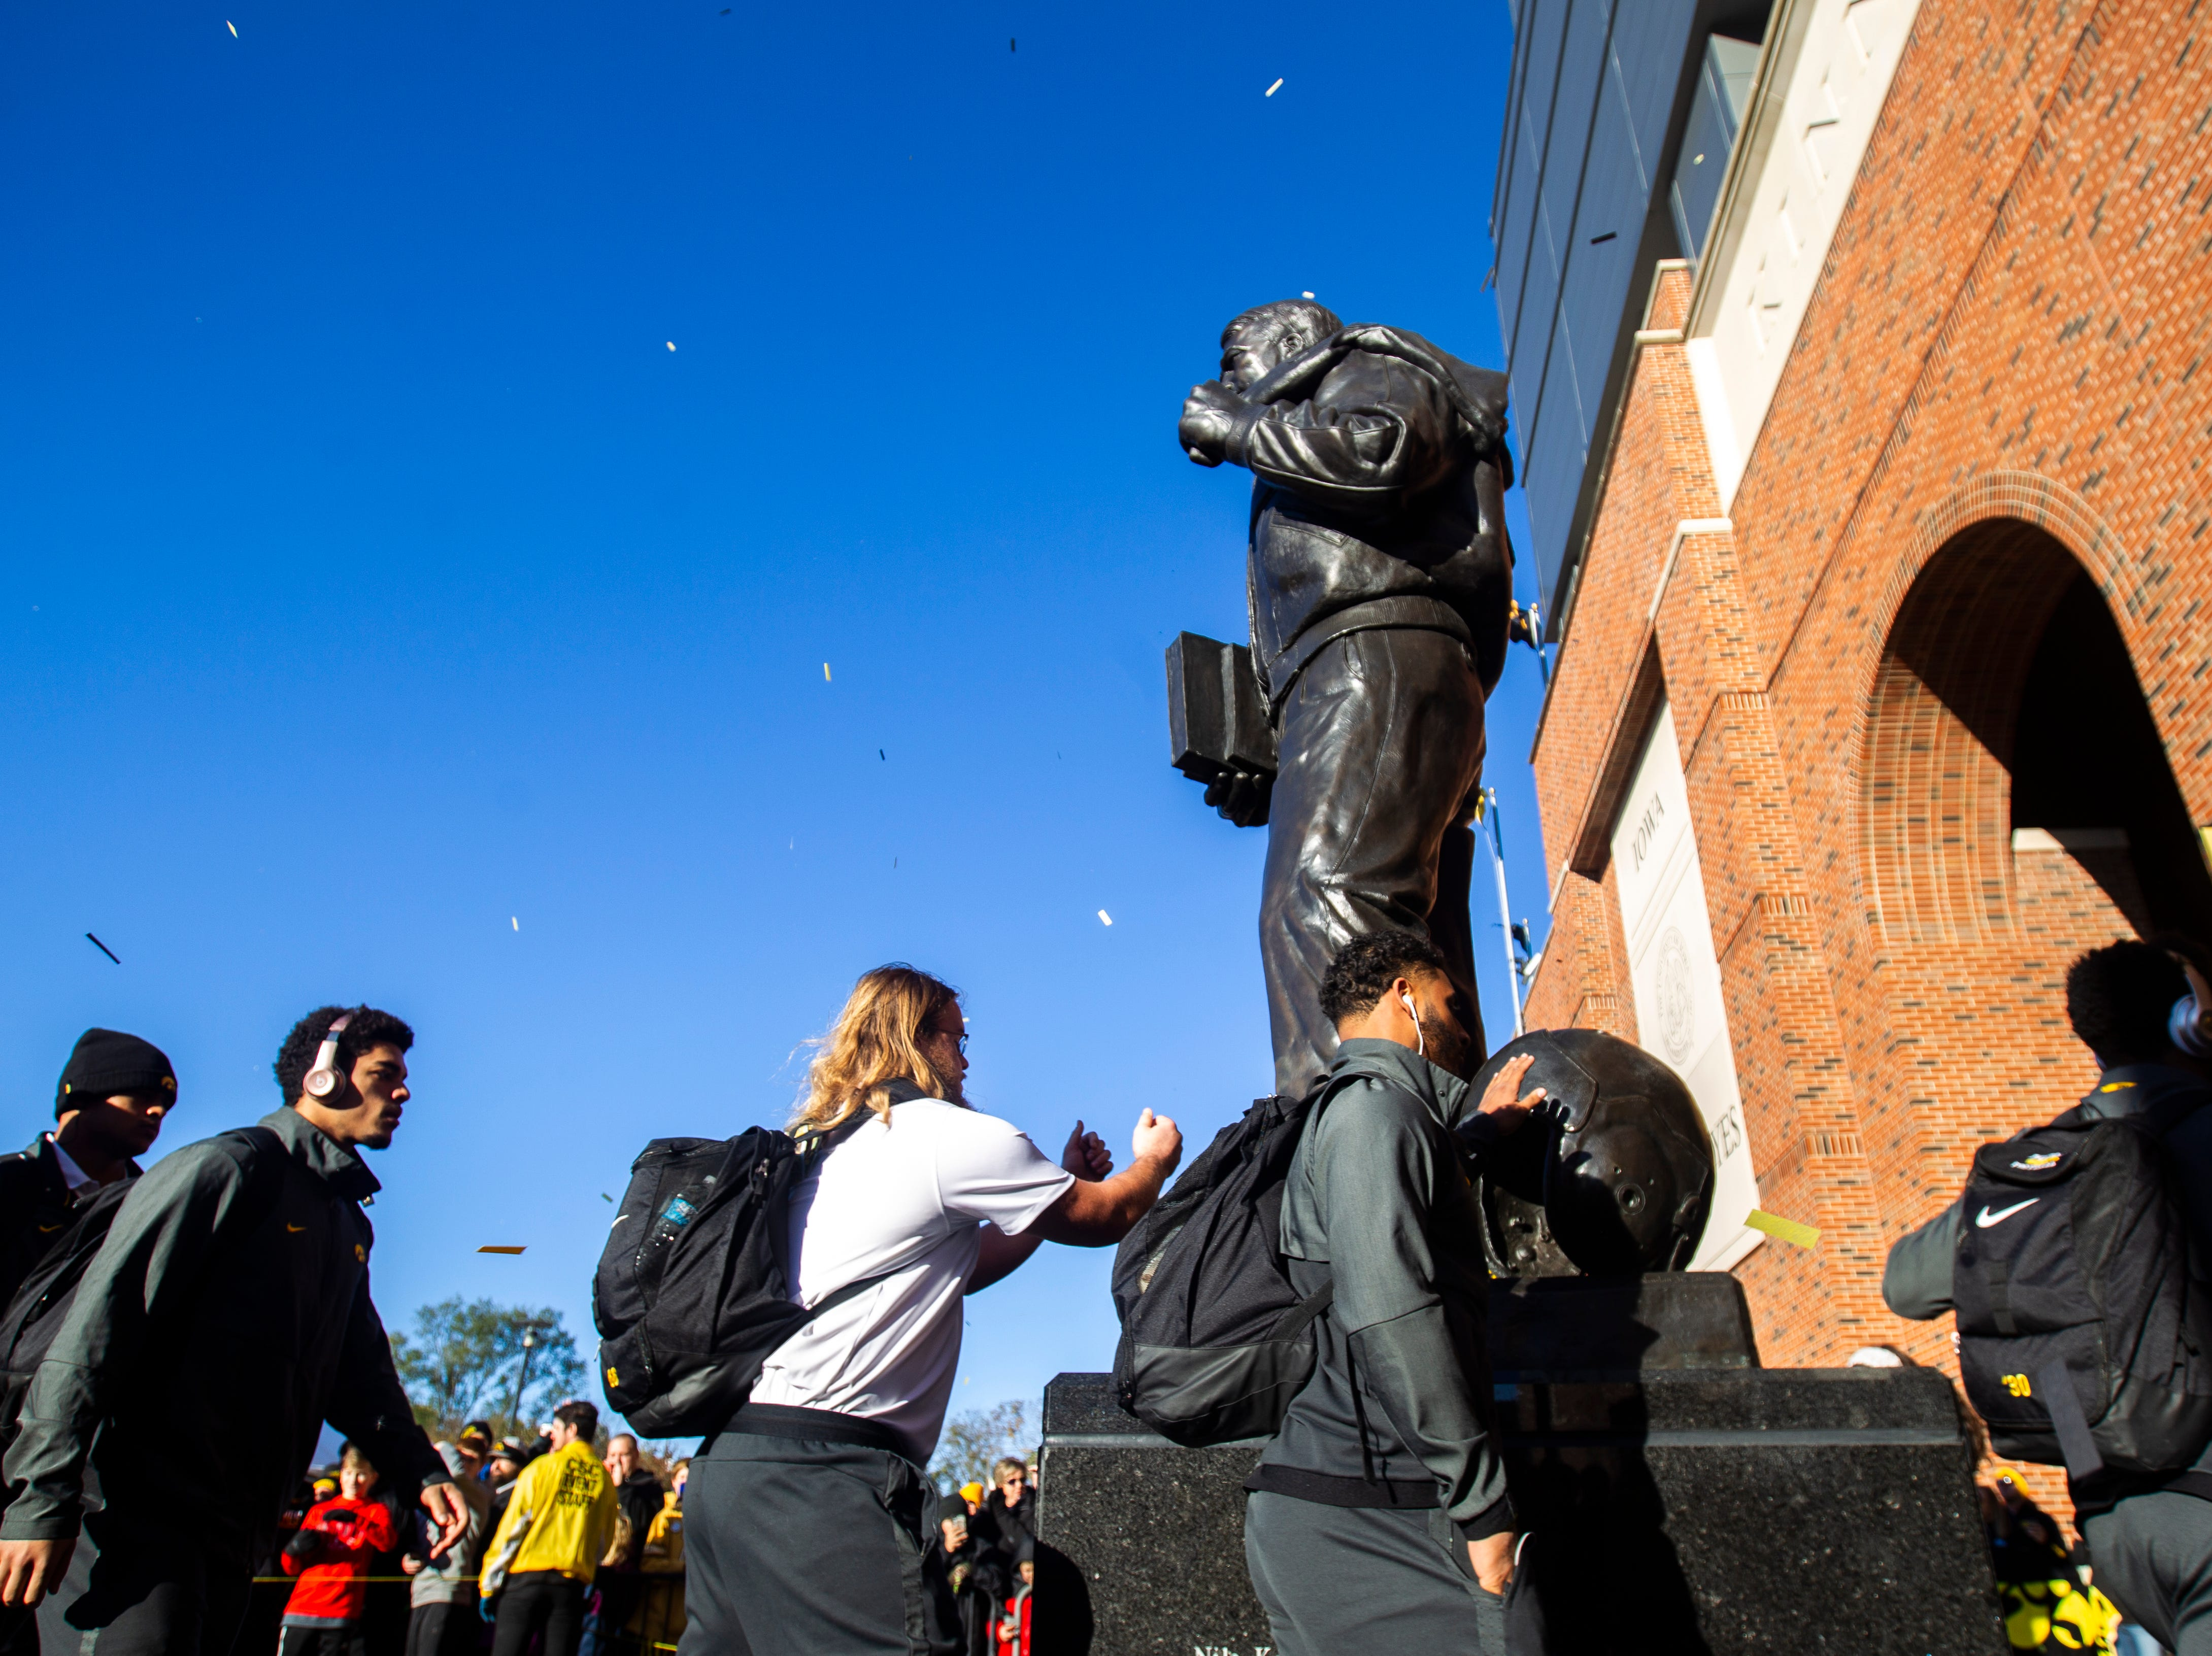 Iowa players walk past a statue of Nile Kinnick while entering the stadium before an NCAA Big Ten football game on Saturday, Oct. 20, 2018, at Kinnick Stadium in Iowa City.